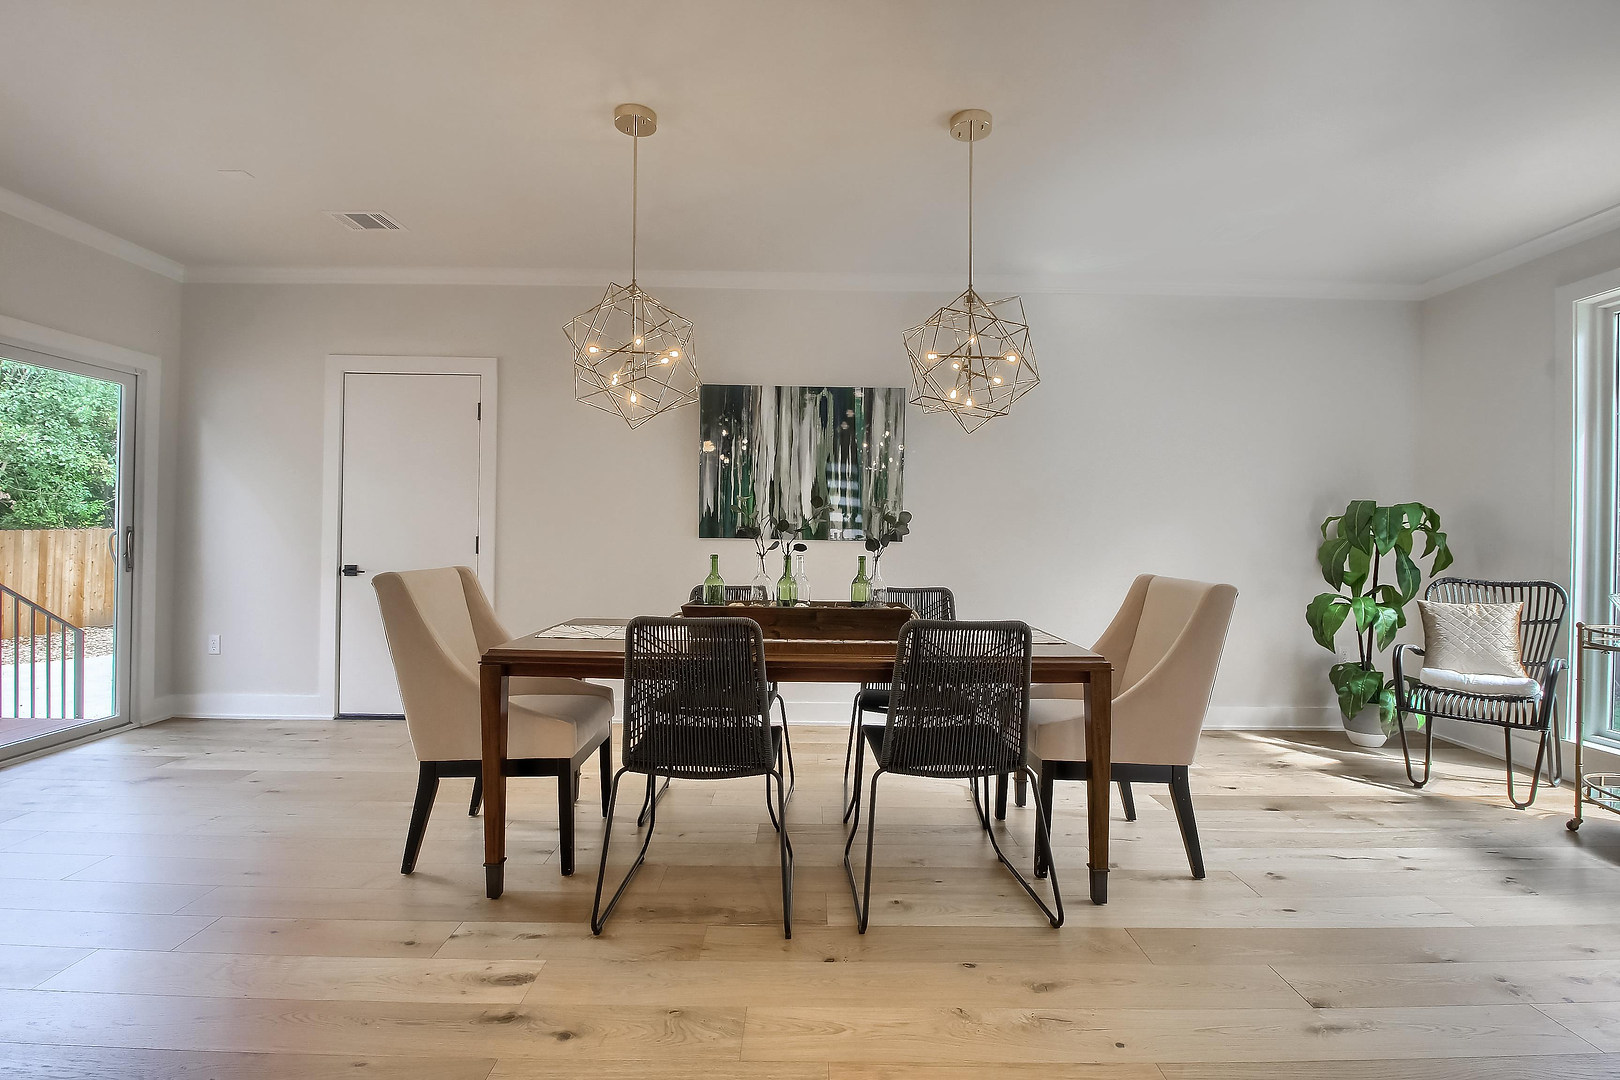 Home Renovation Formal Dining Room Light Fixtures on West 29th in Austin, Texas